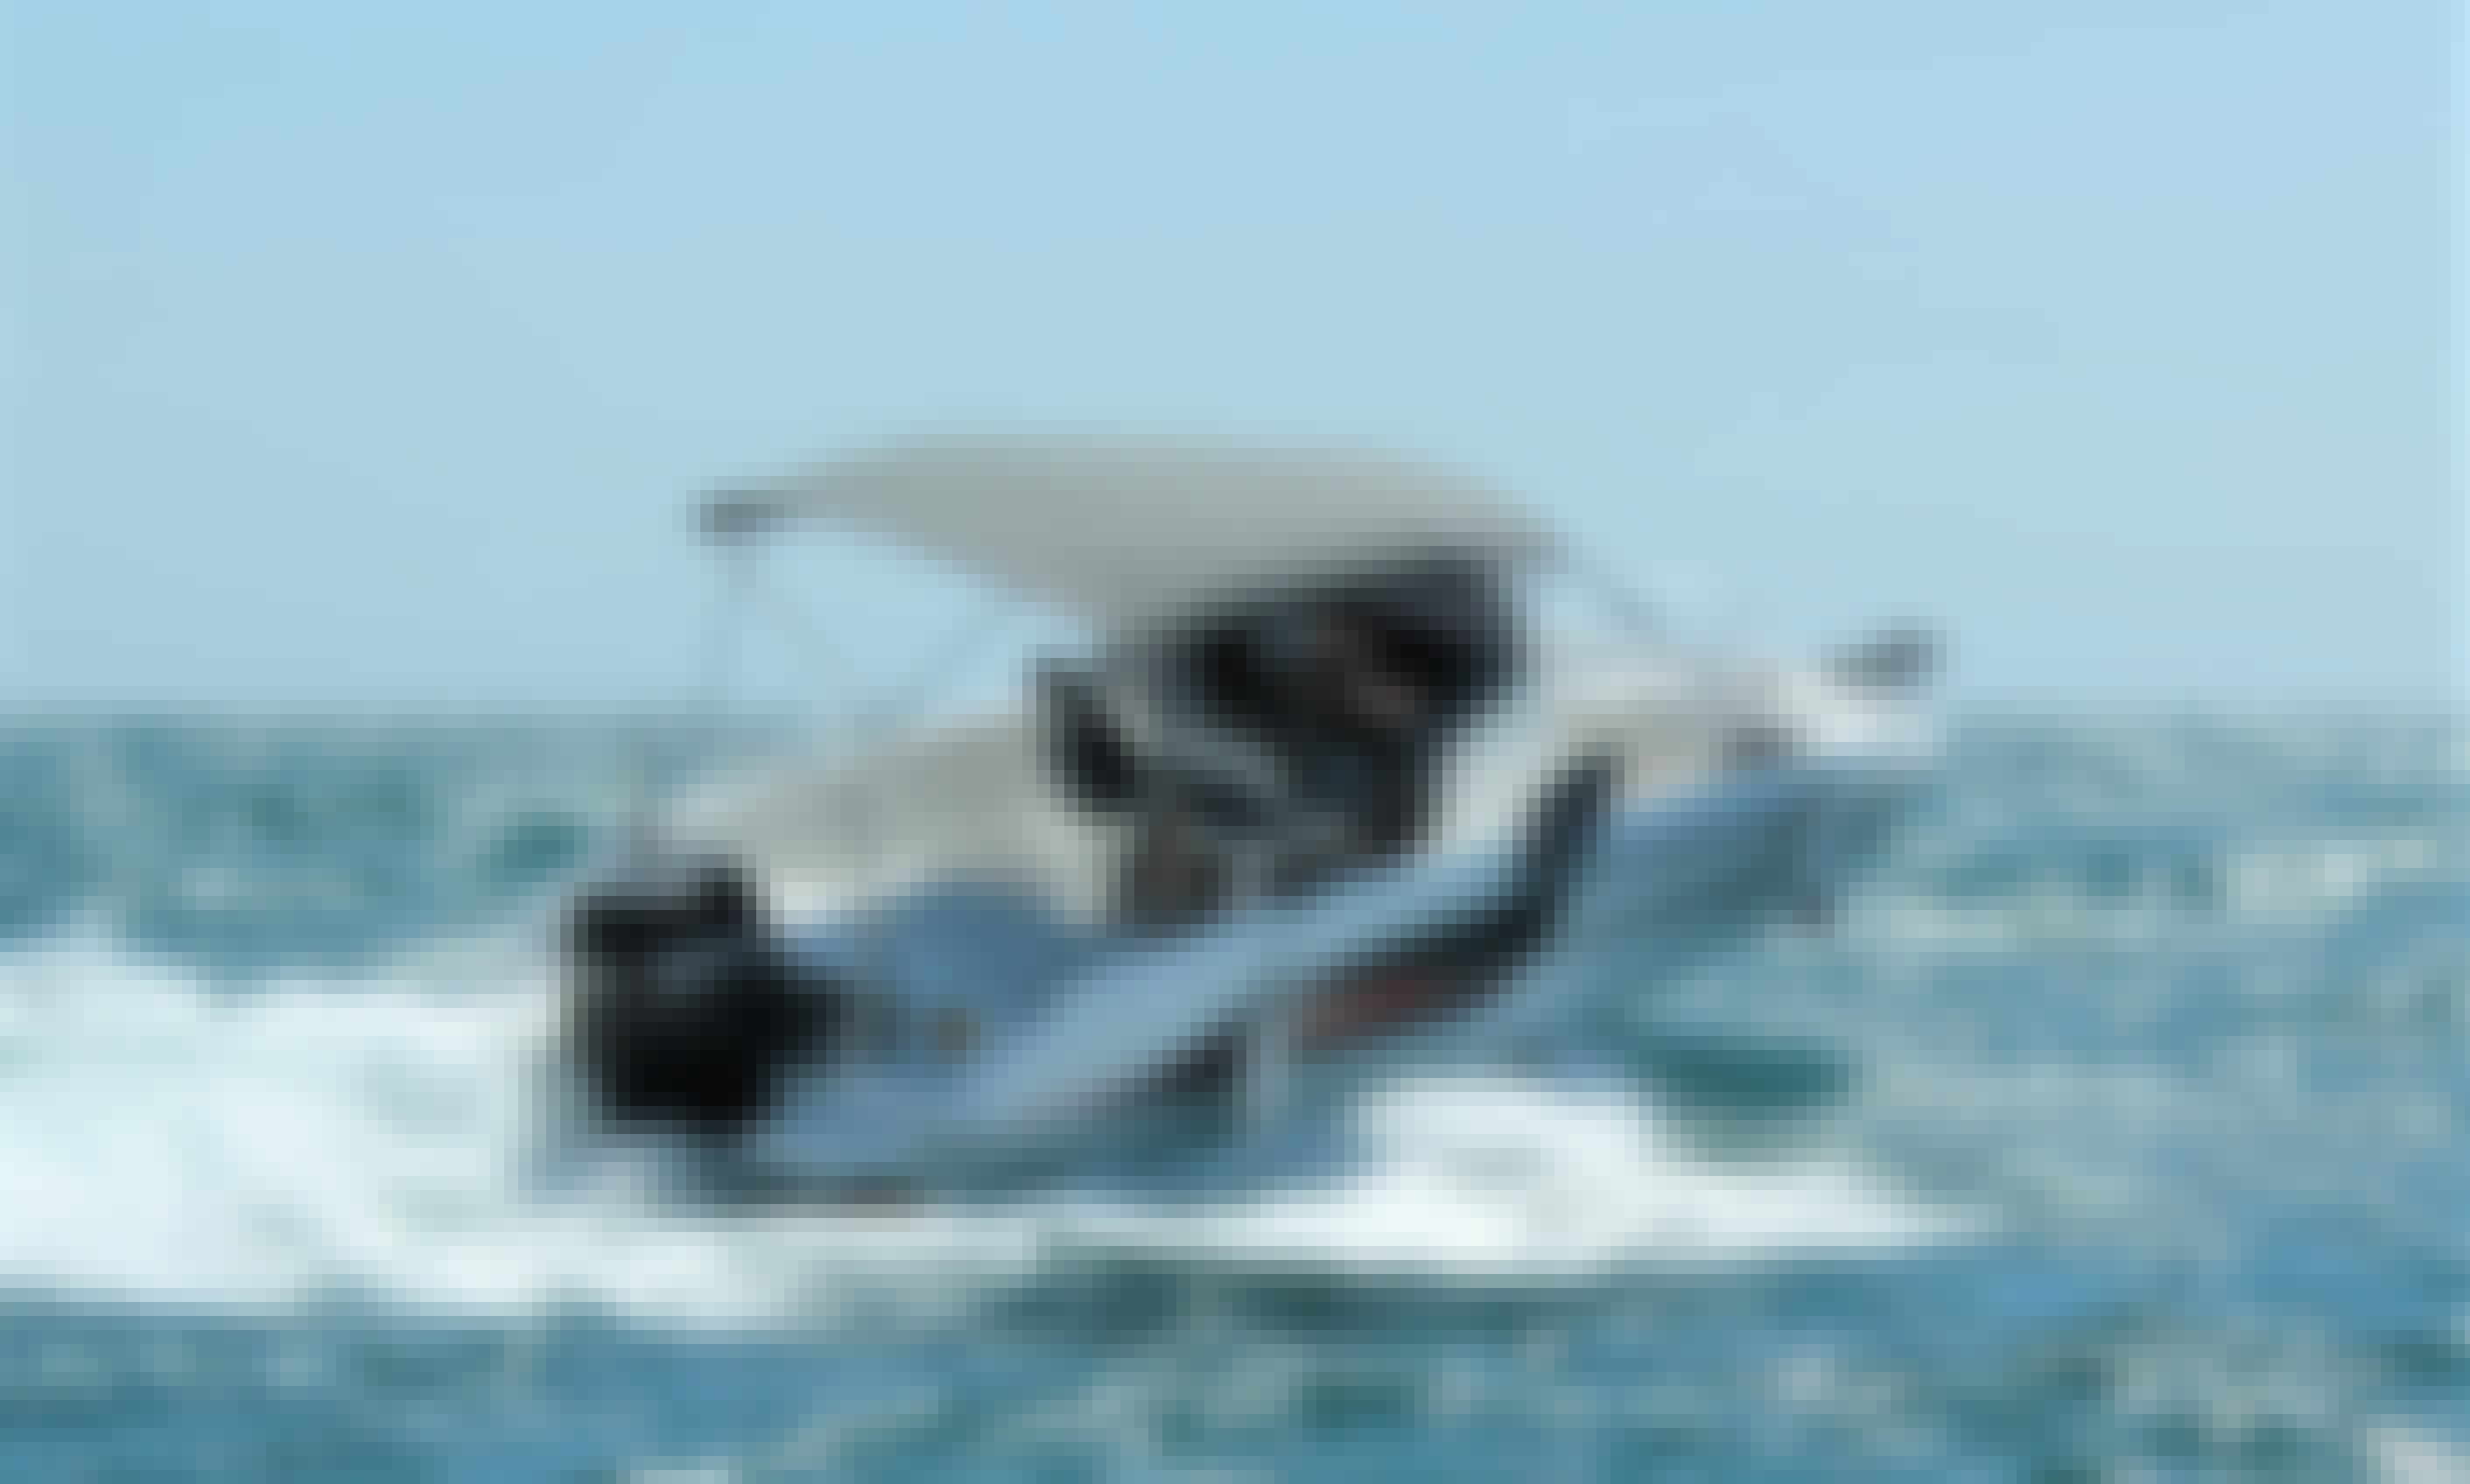 Rent this Beneteau Flyer 6.6 for 10 People in Barcelona, Spain!